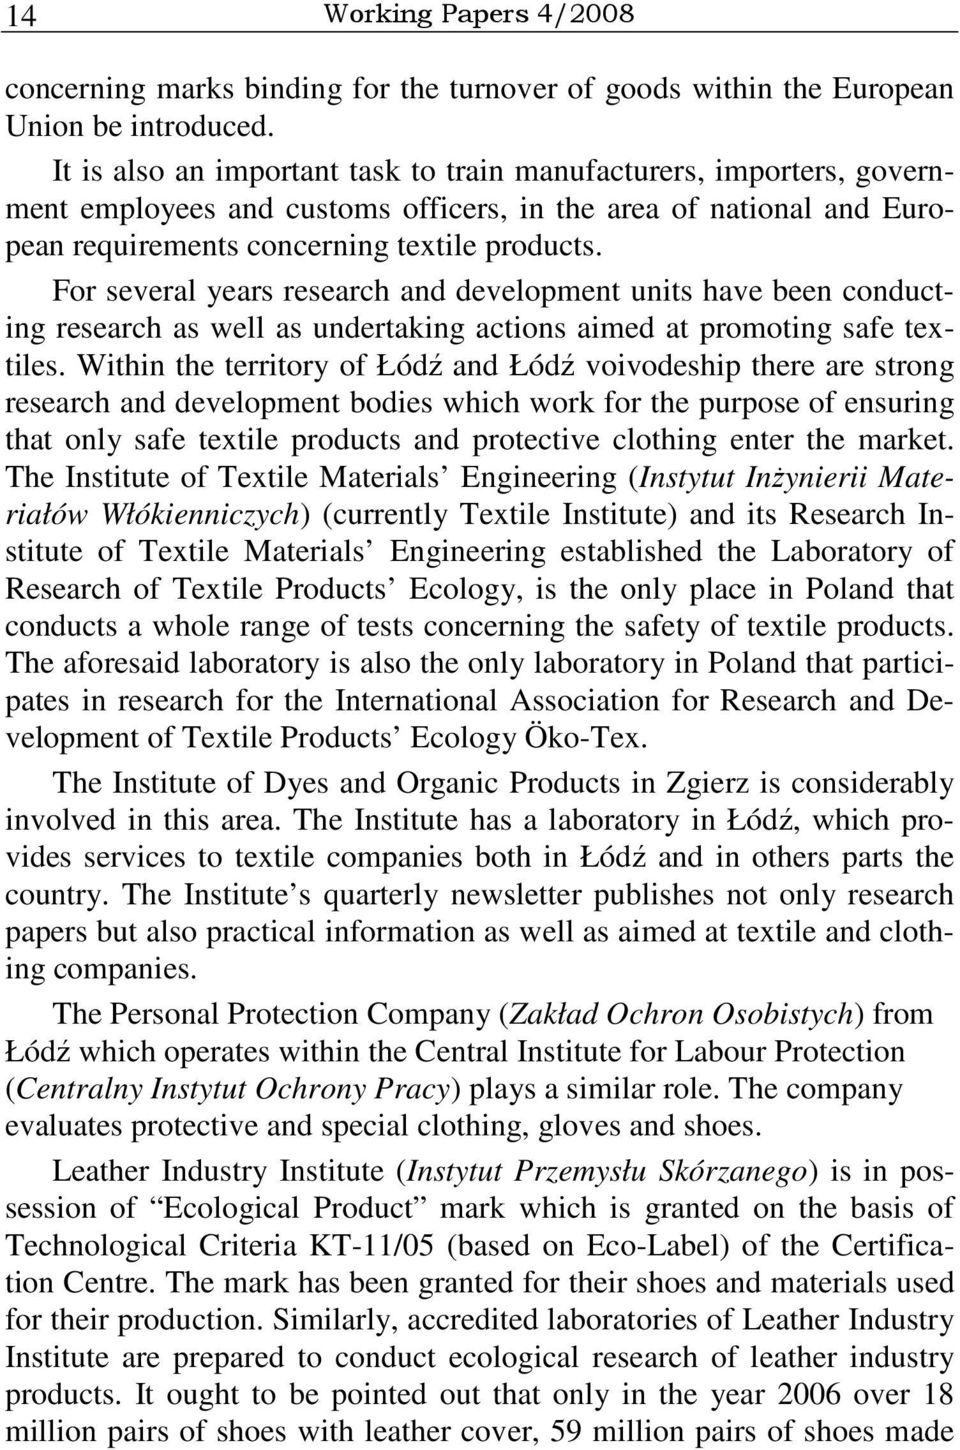 For several years research and development units have been conducting research as well as undertaking actions aimed at promoting safe textiles.